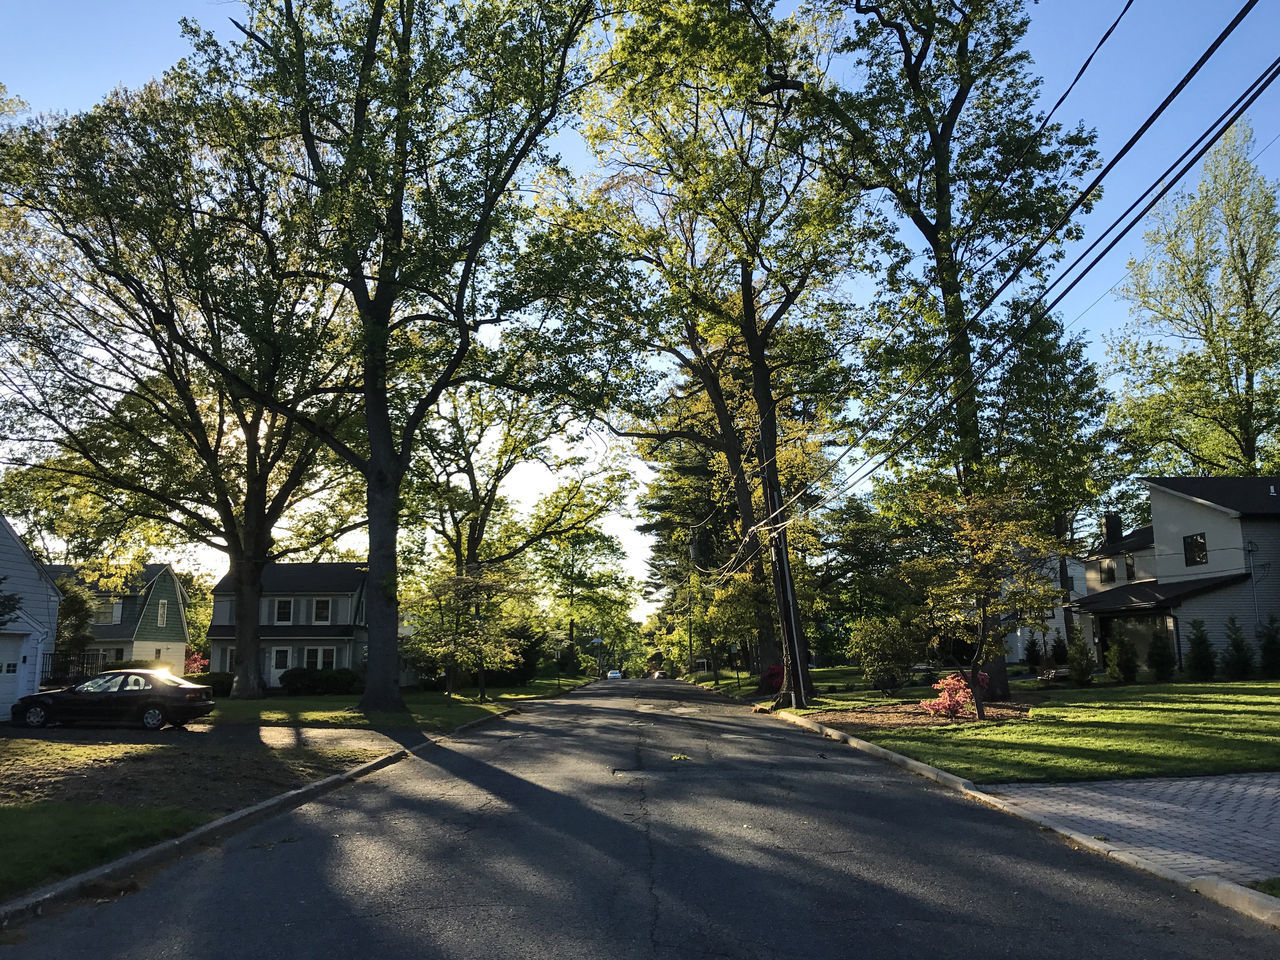 New Jersey suburbs. Photo by Tom Bland. Day Empty Streets Evening Evening Light IPhoneography Neighborhood New Jersey Nj No People Outdoors Road Spring Street Street Scene Suburbia Suburbs Sunlight Sunshine Trees United States Urban